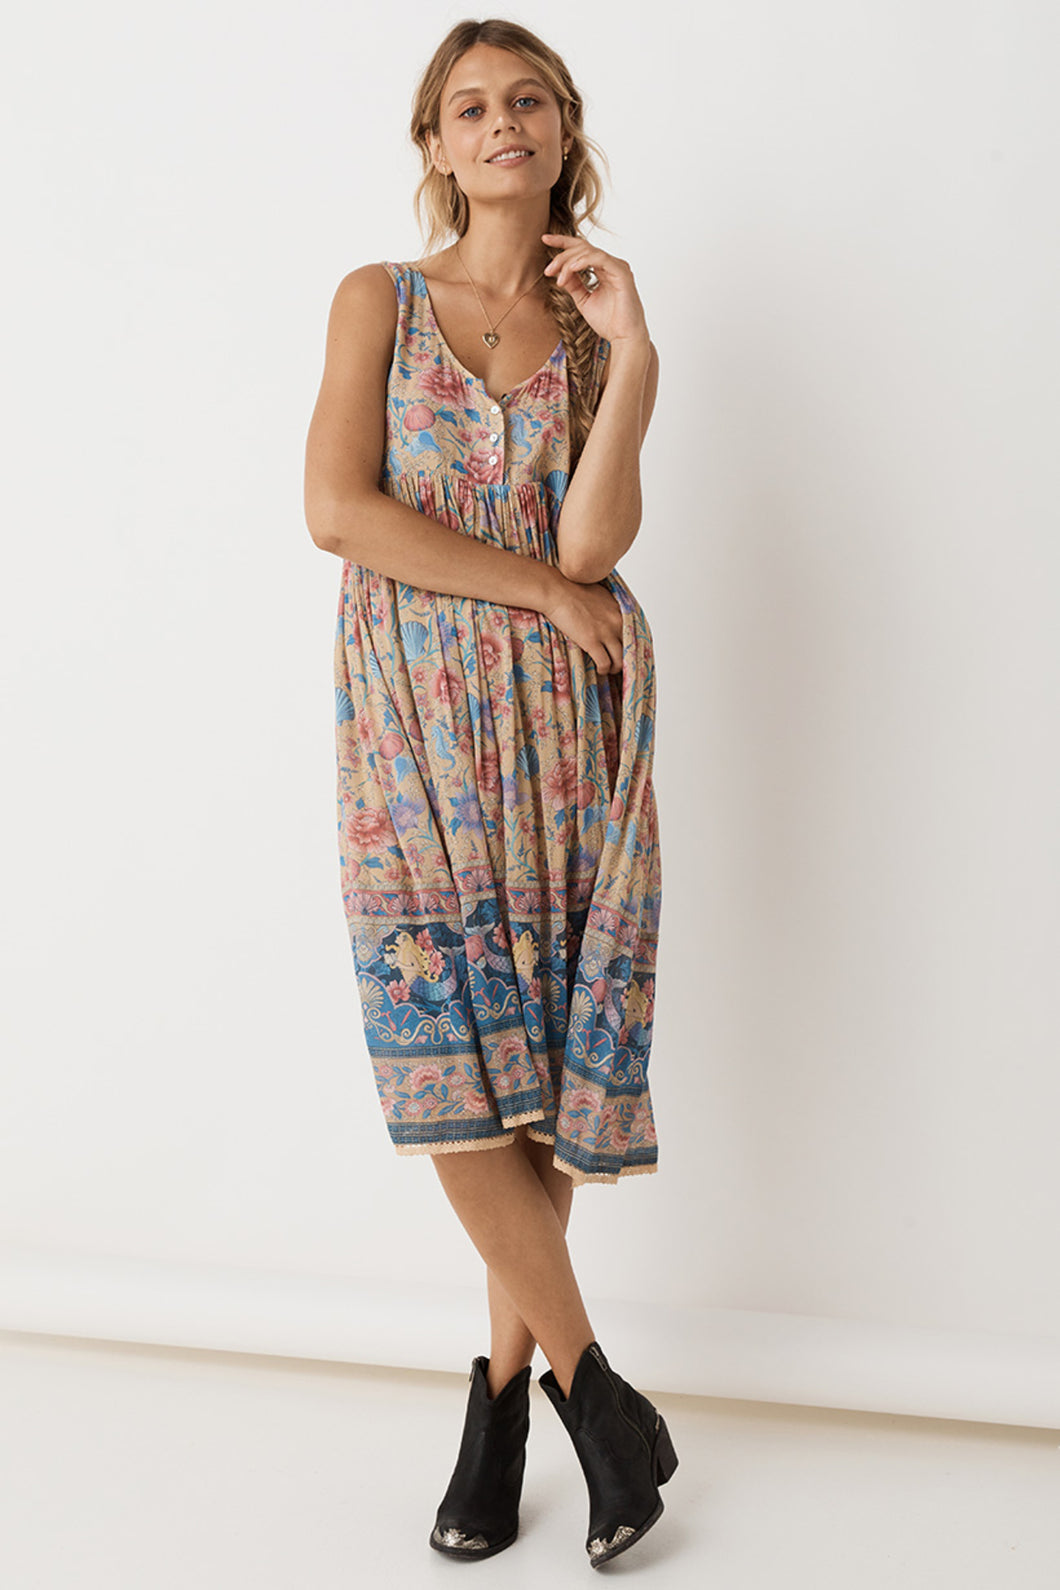 Spell & The Gypsy Collective Seashell Babydoll Midi Dress